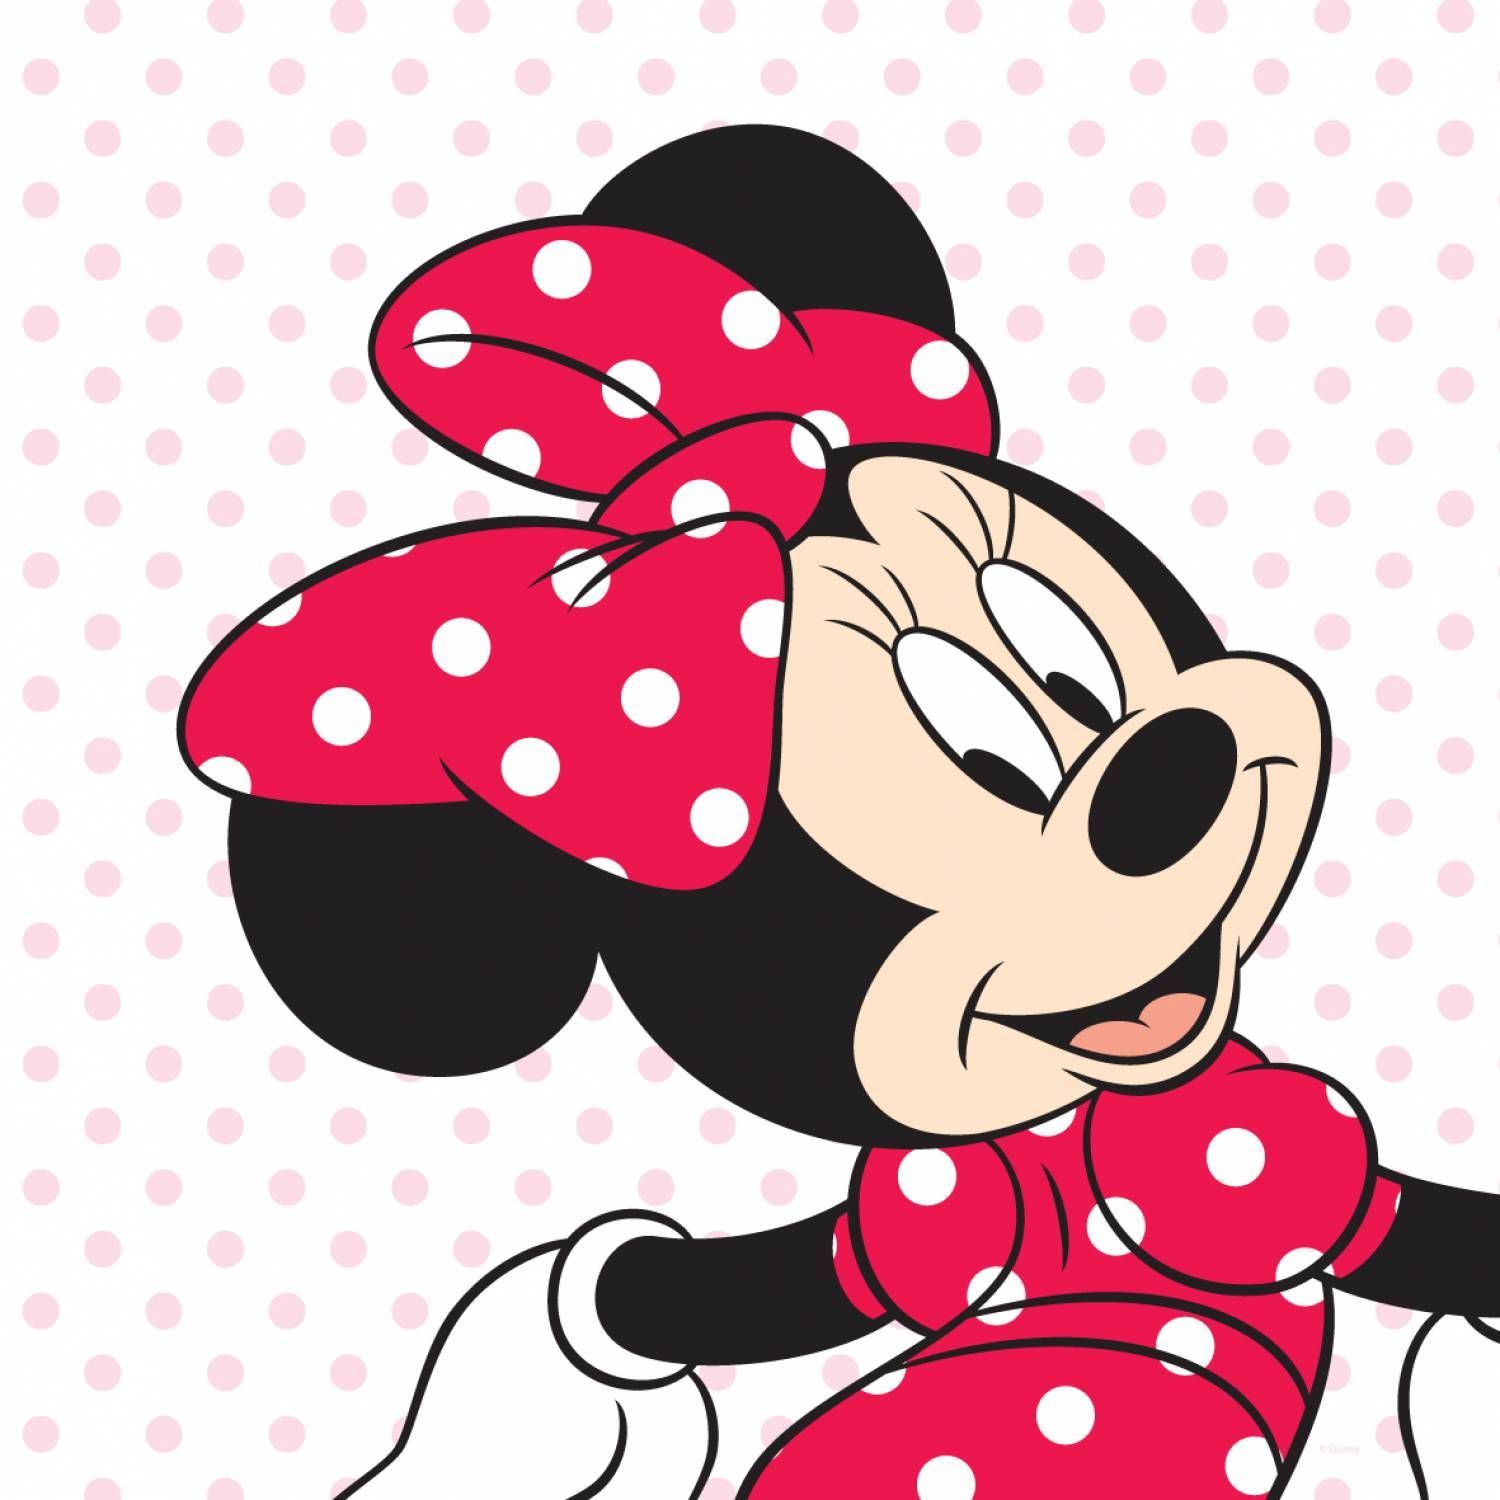 Papel de parede clipart svg free library Minnie Mouse Happy Birthday Round Foil Balloon - ClipArt ... svg free library